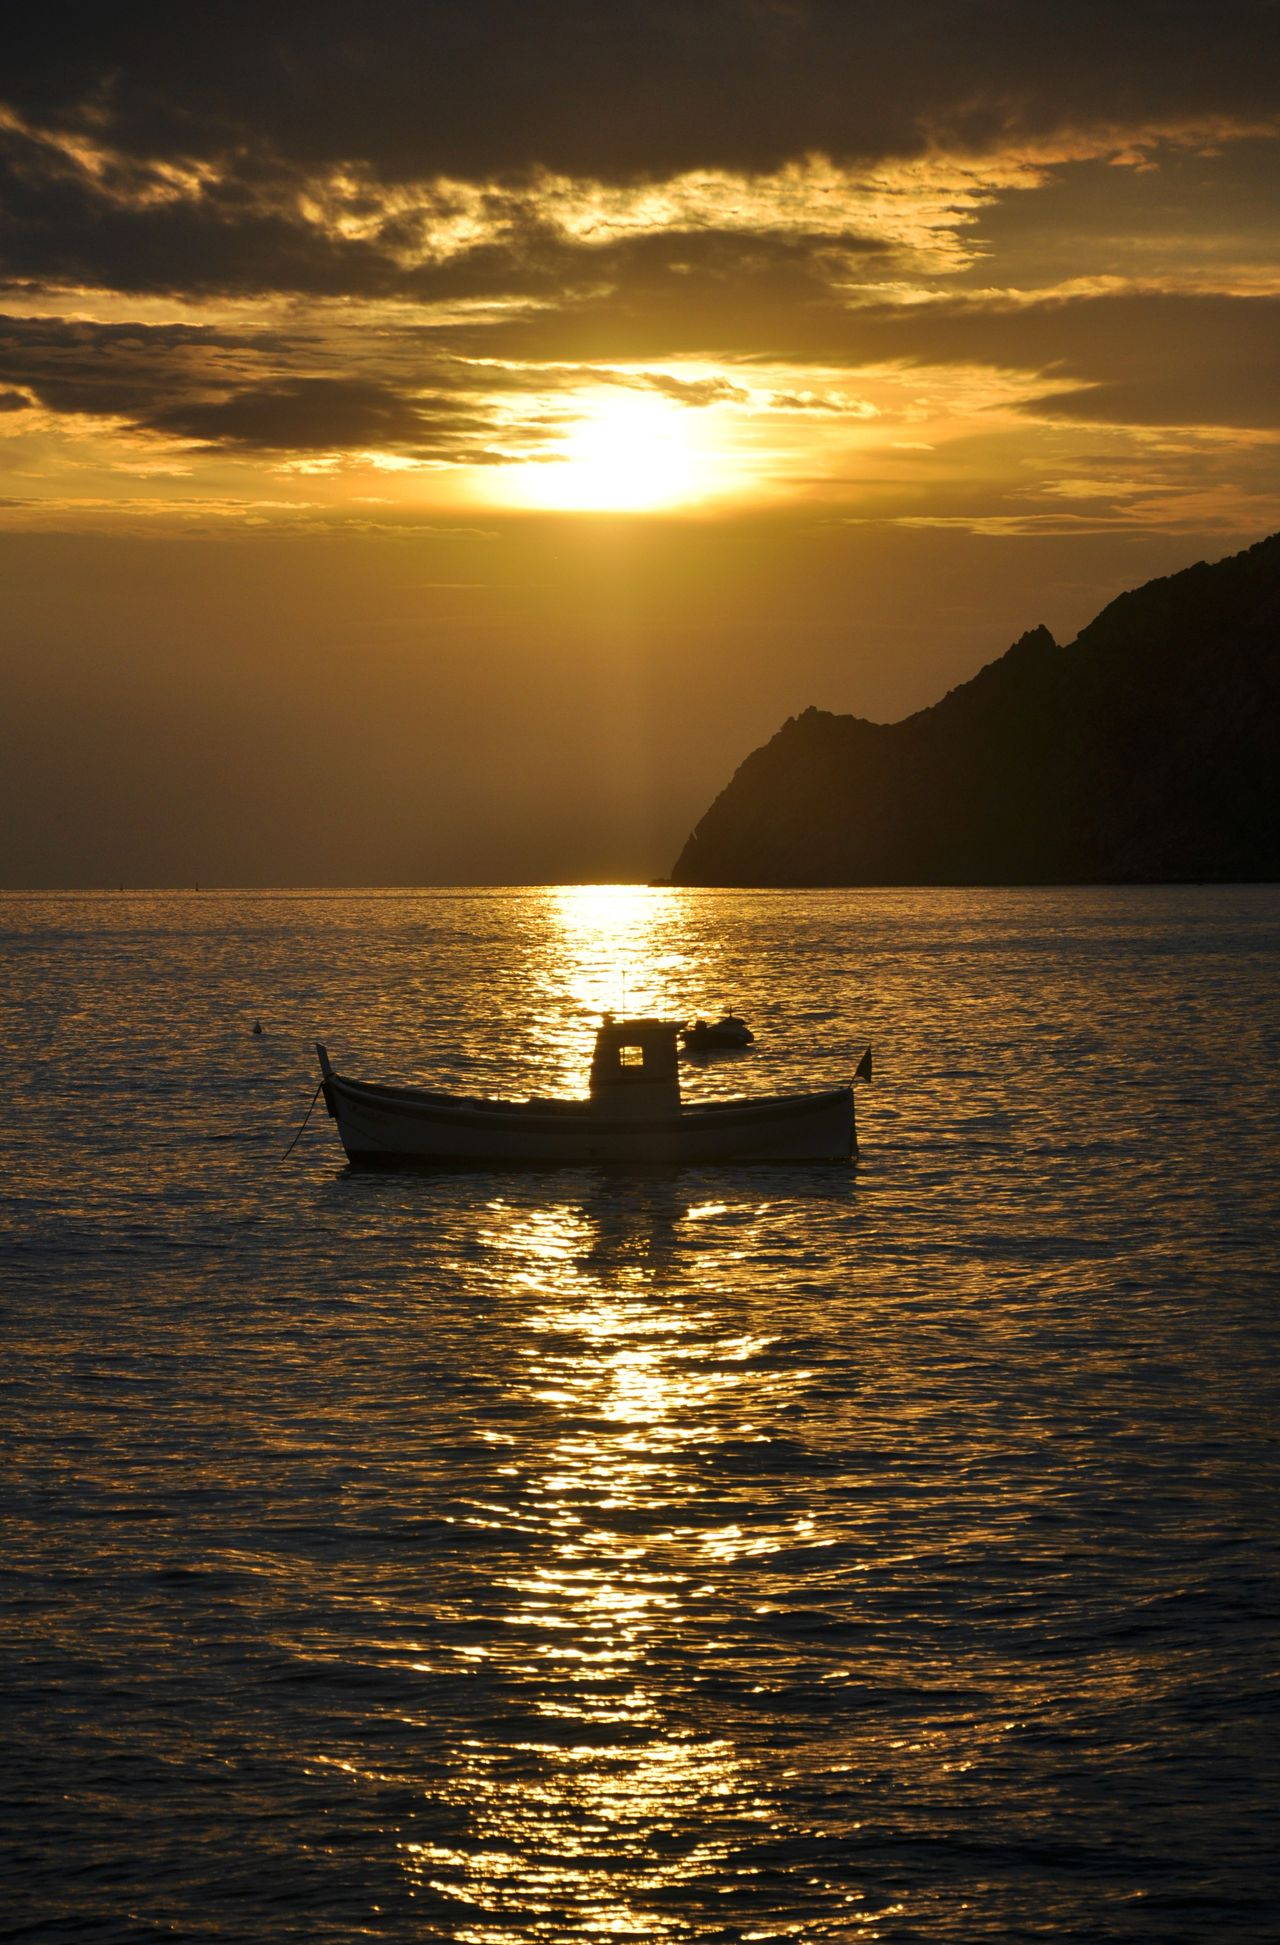 Beauty In Nature Boat Nature Nautical Vessel No People Outdoors Sea Sky Sunset Travel Destinations Water Loneliness Lonely Boat Lonely Object Calm Sea